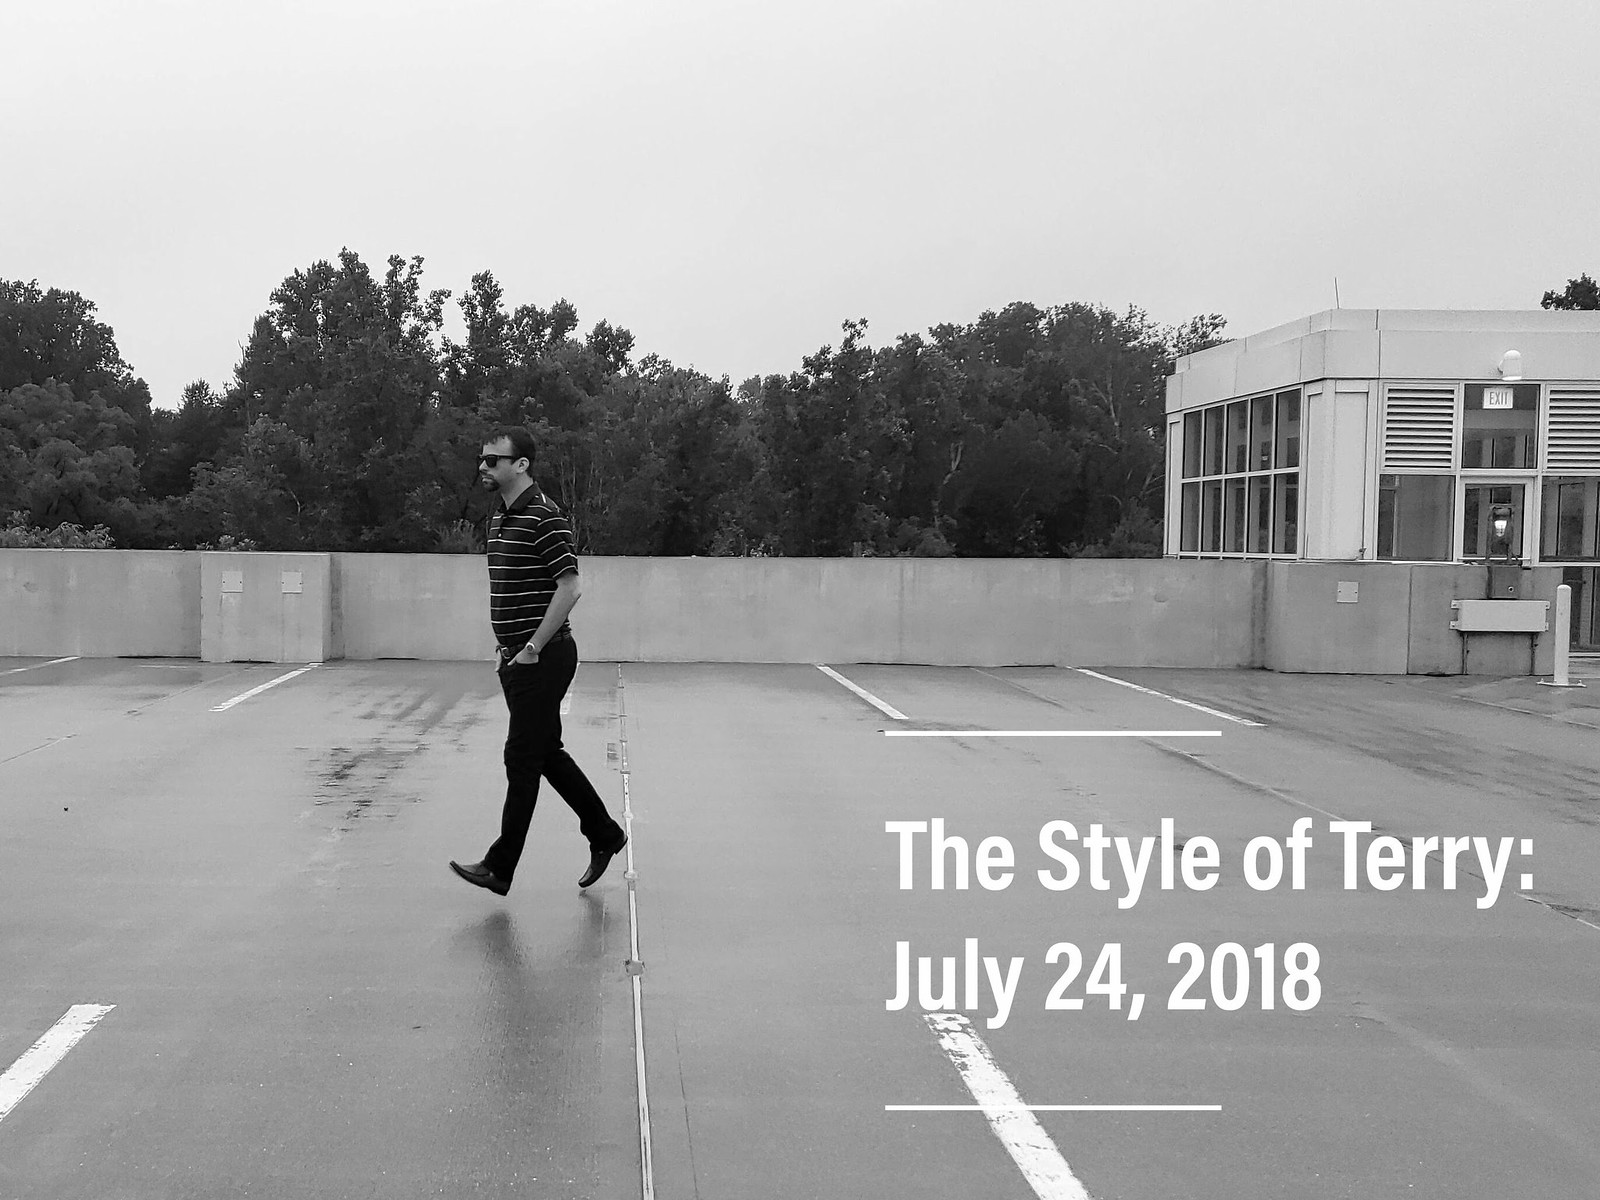 The Style of Terry: 7.24.18